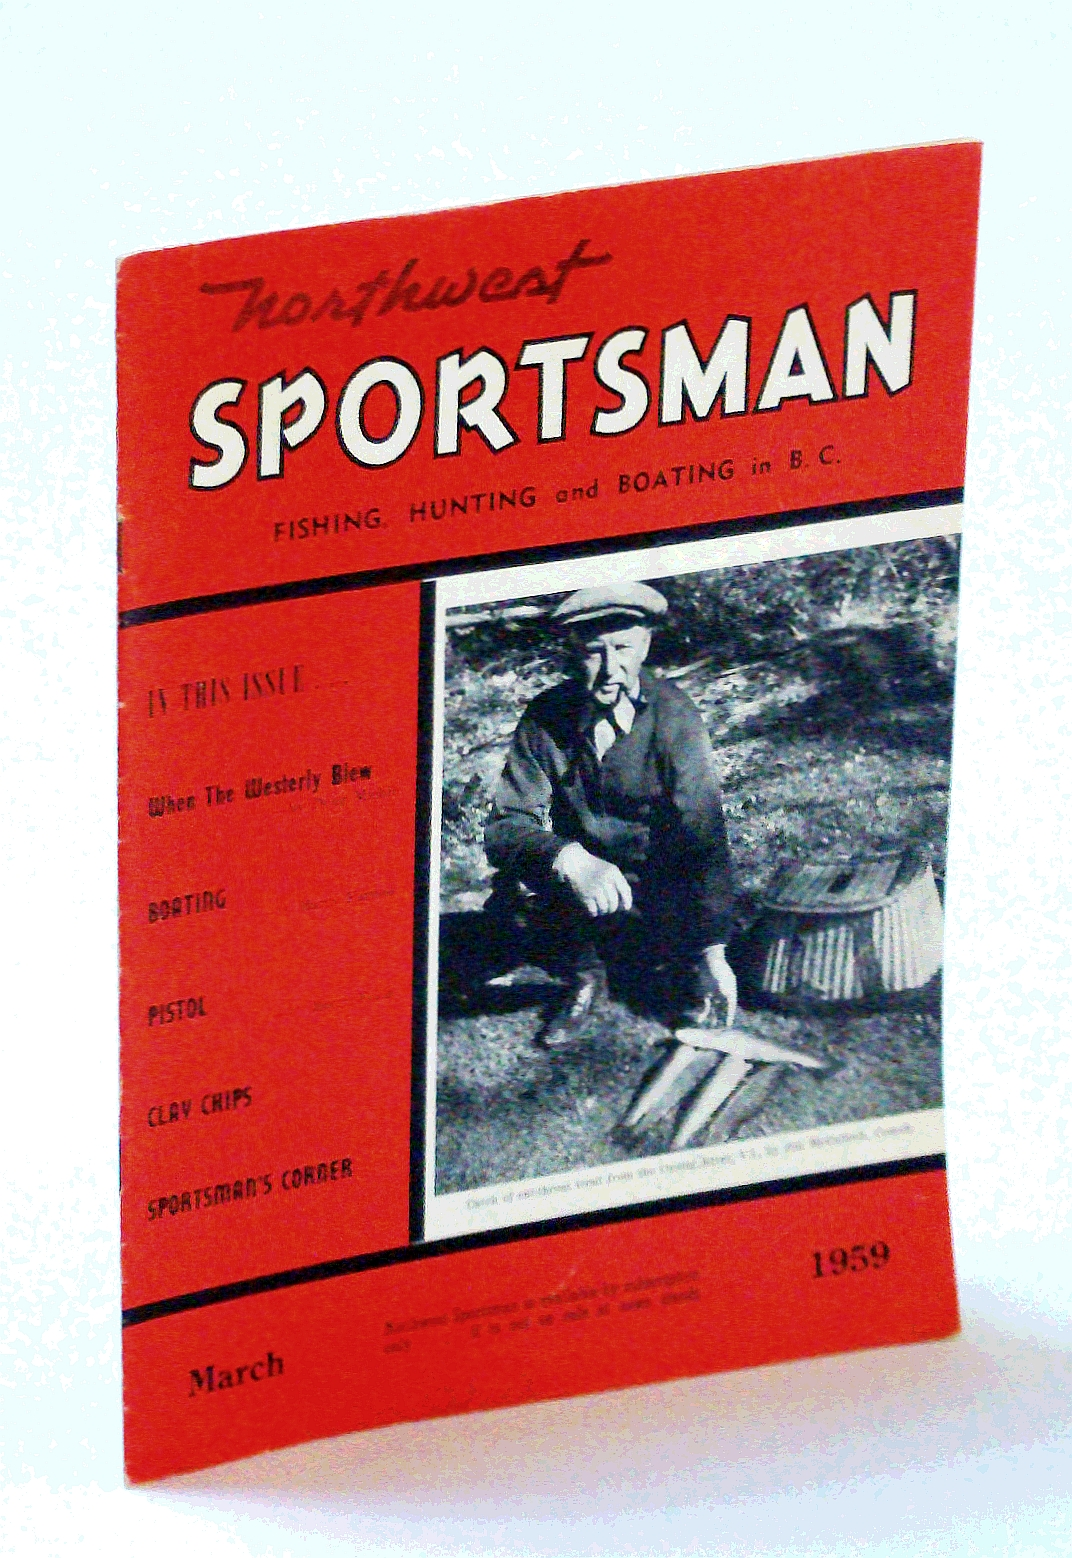 Image for Northwest Sportsman Magazine - Fishing, Hunting and Boating in B.C., March [Mar.] 1959 - Cover Photo of Jim McCulloch of Comox